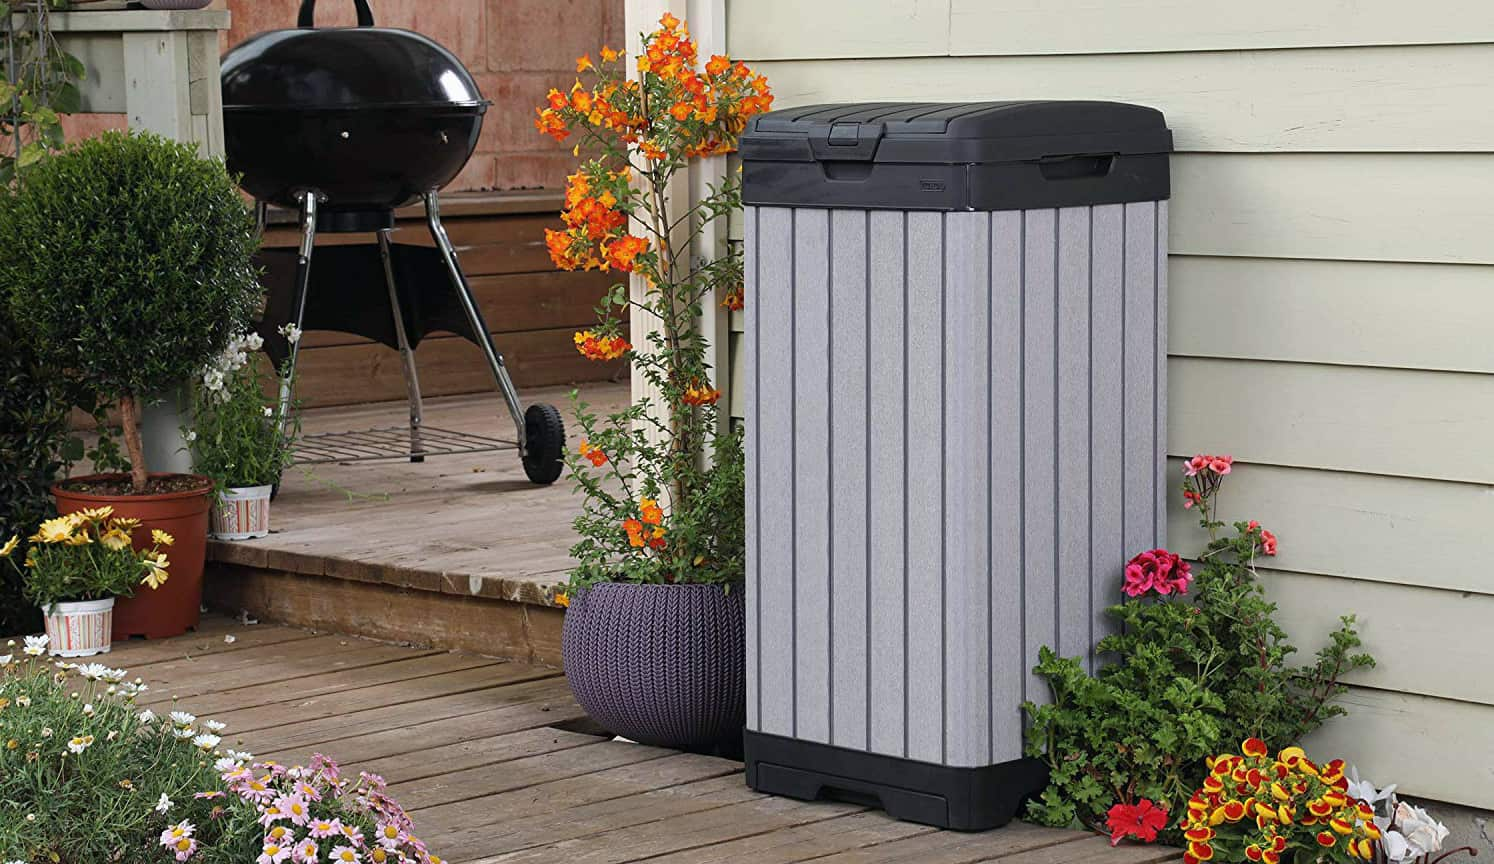 Outdoor Waste Bin as the second related product of Outdoor Trash Can